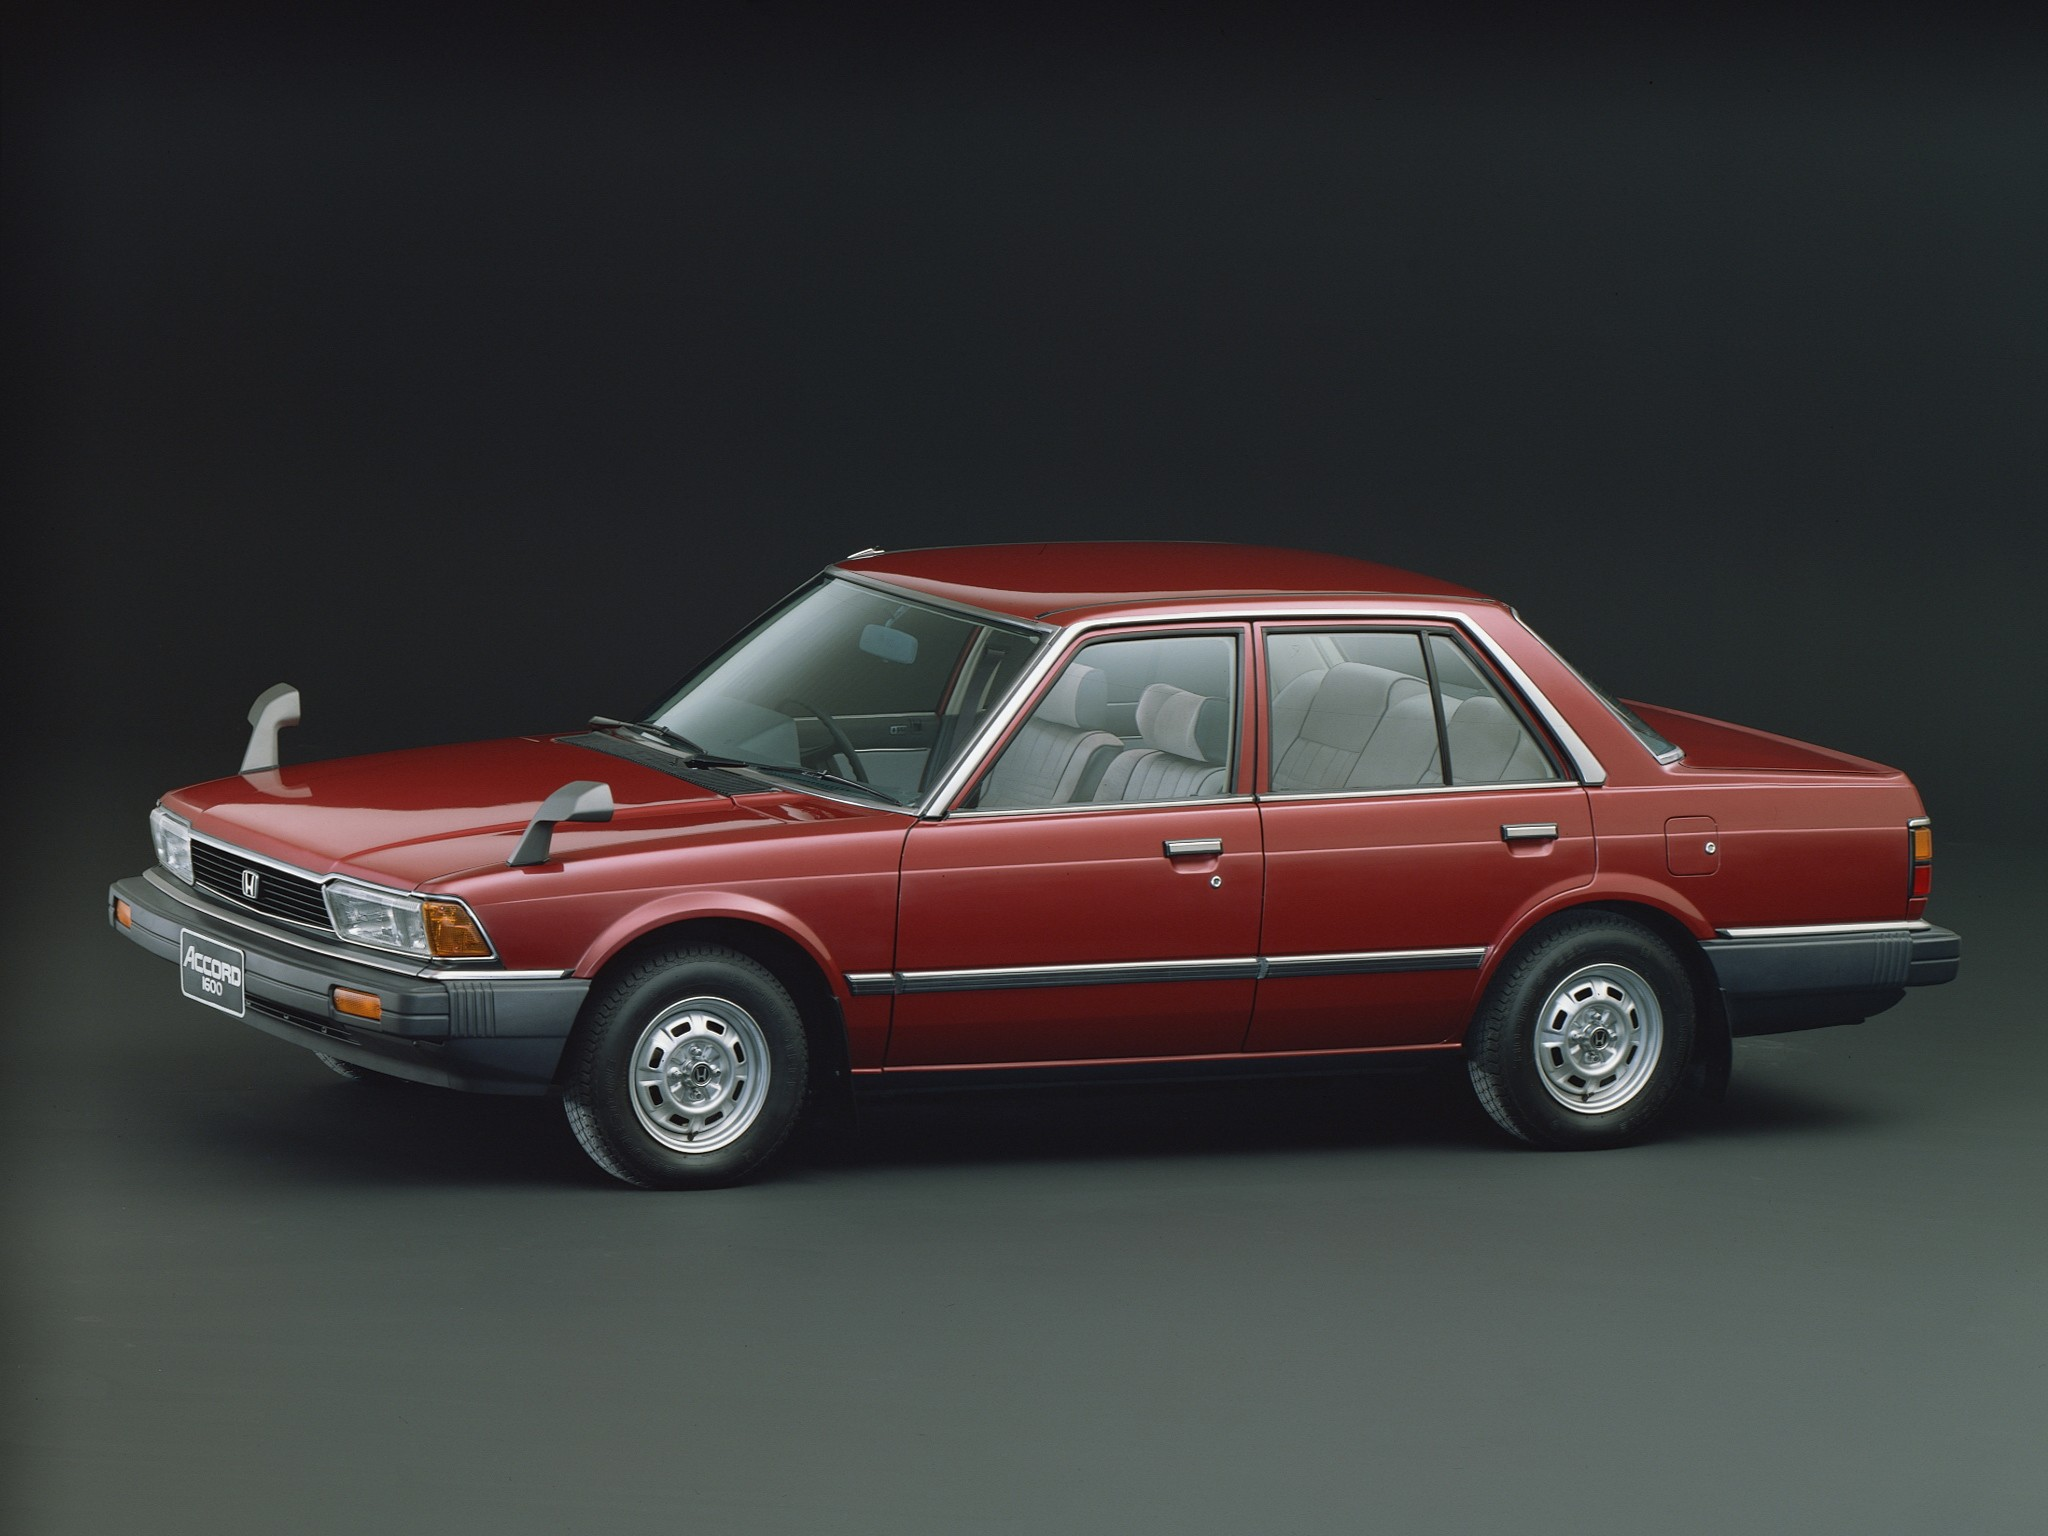 HONDA Accord 4 Doors specs - 1981, 1982, 1983, 1984, 1985 ...